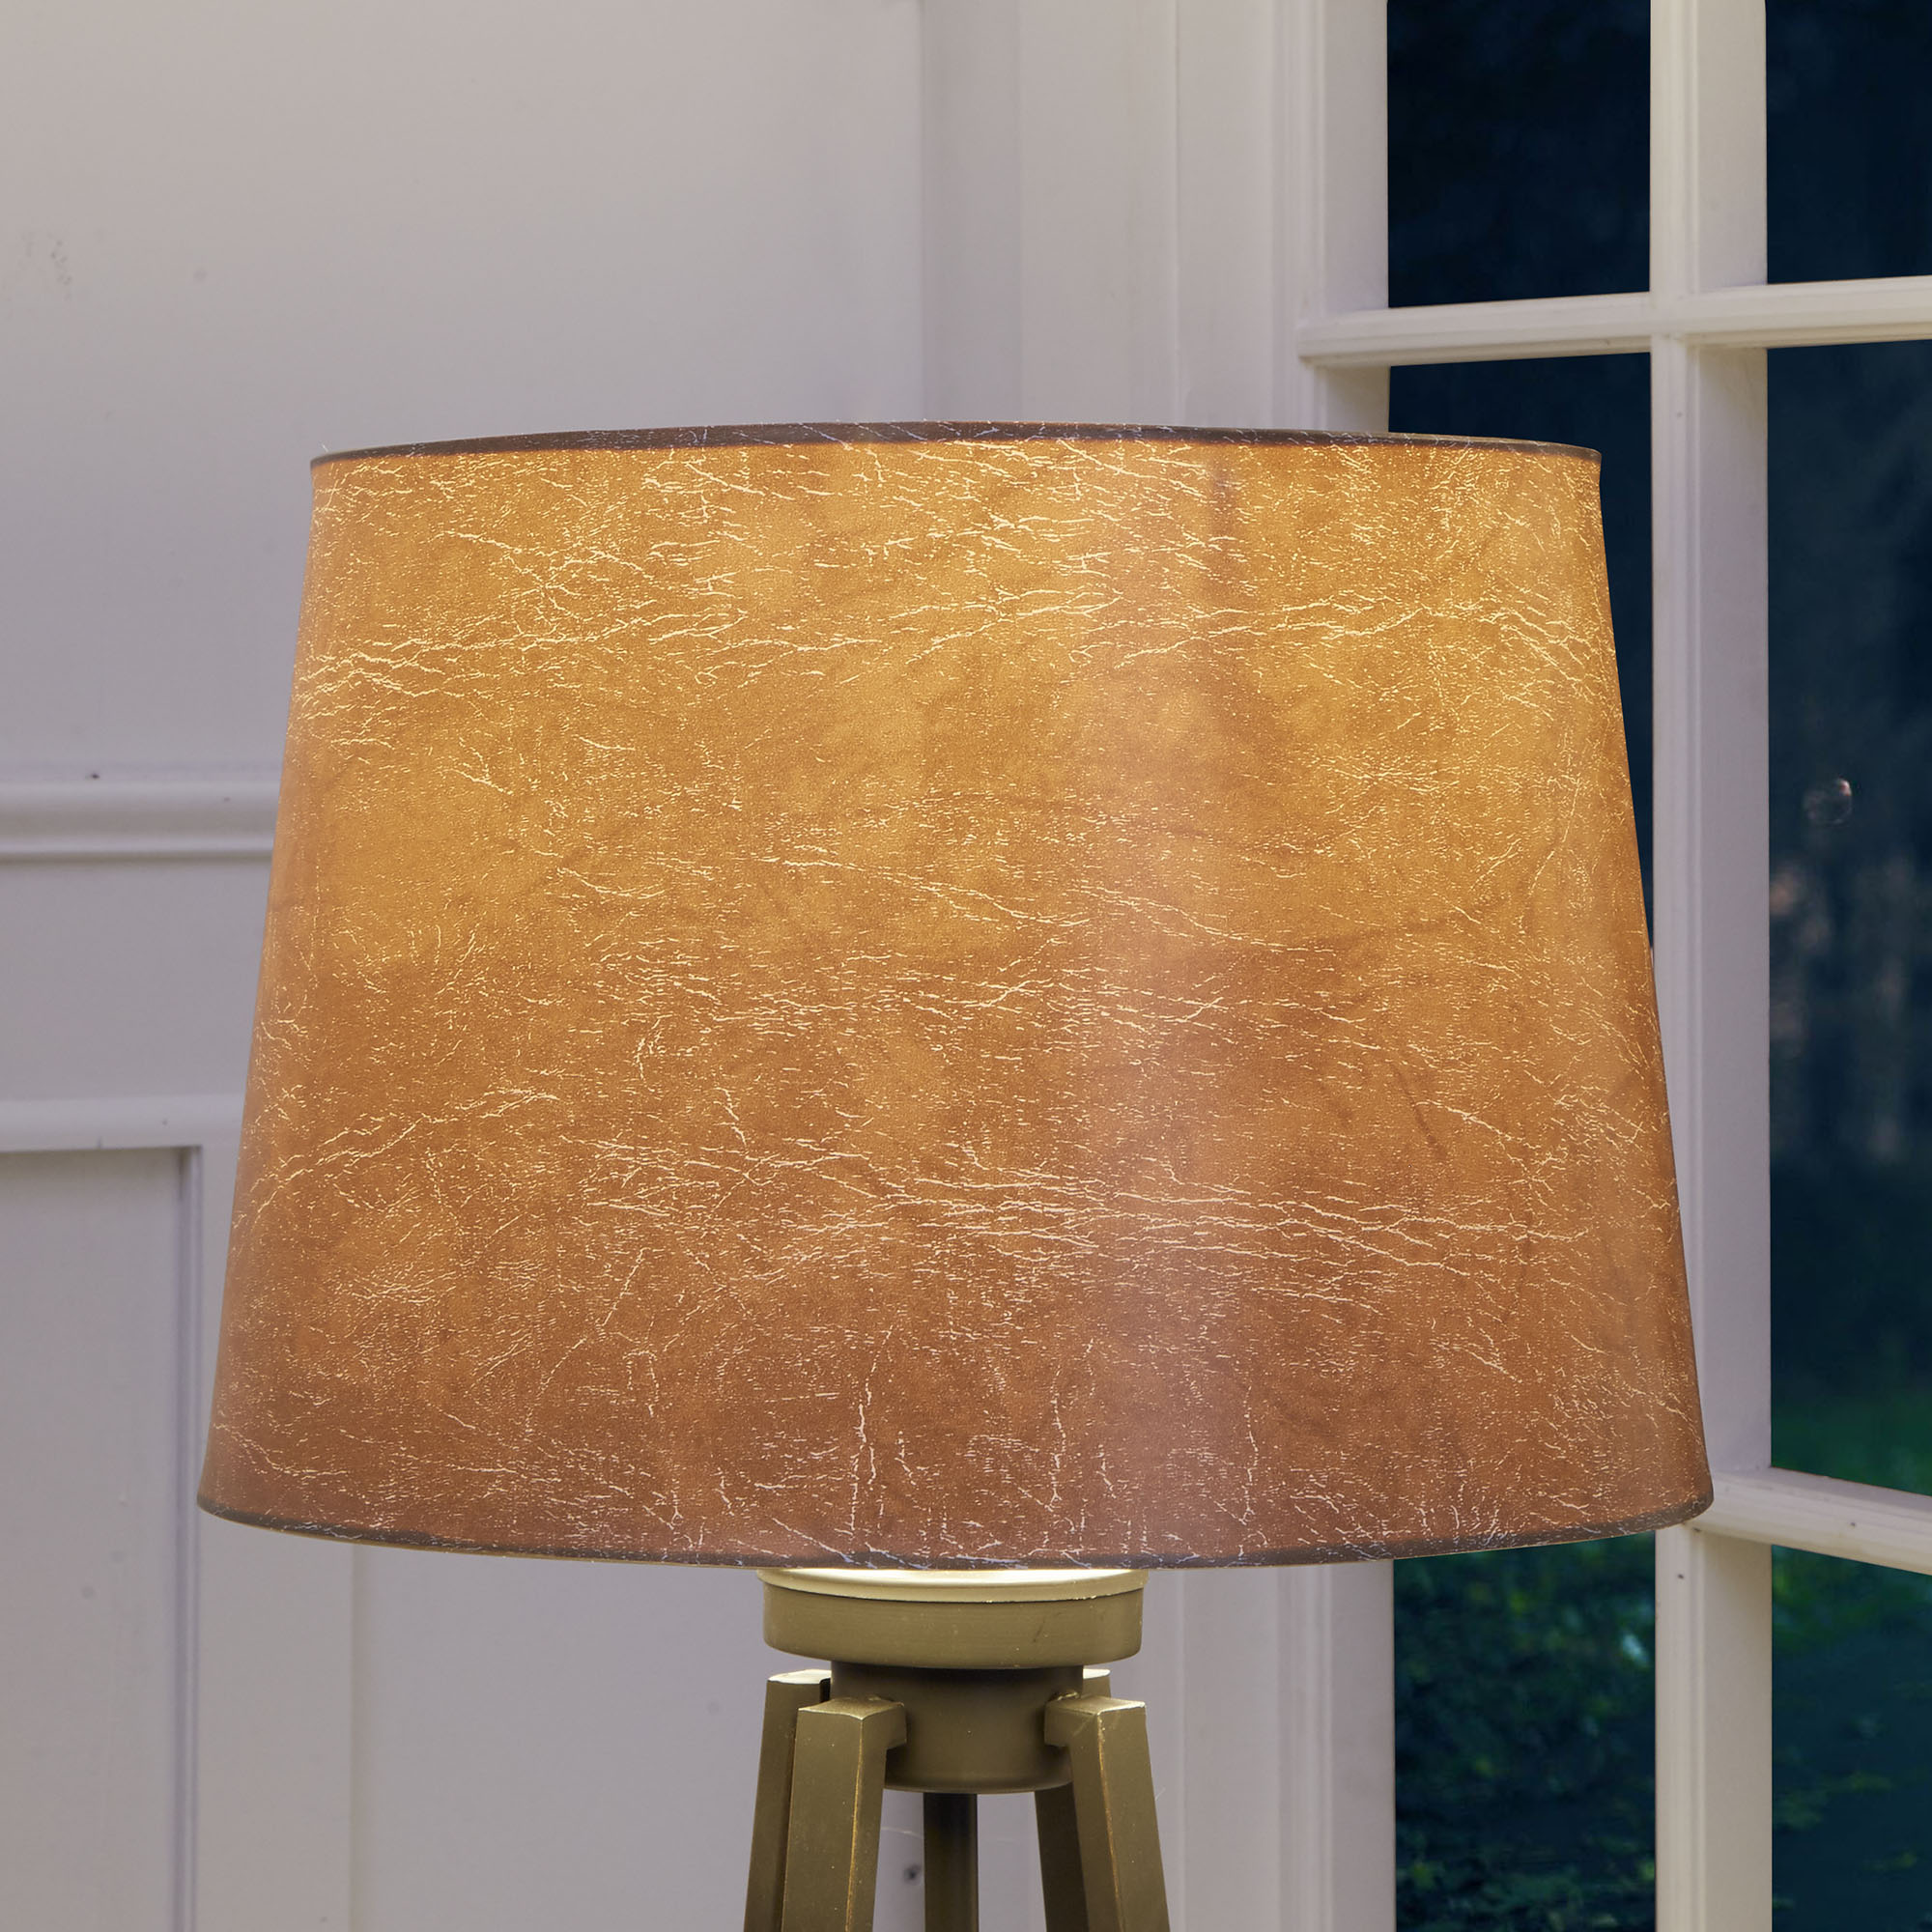 lt lamps peak lamp shades pair victorian brass floor draped and leather jewels of table leathe chandelier